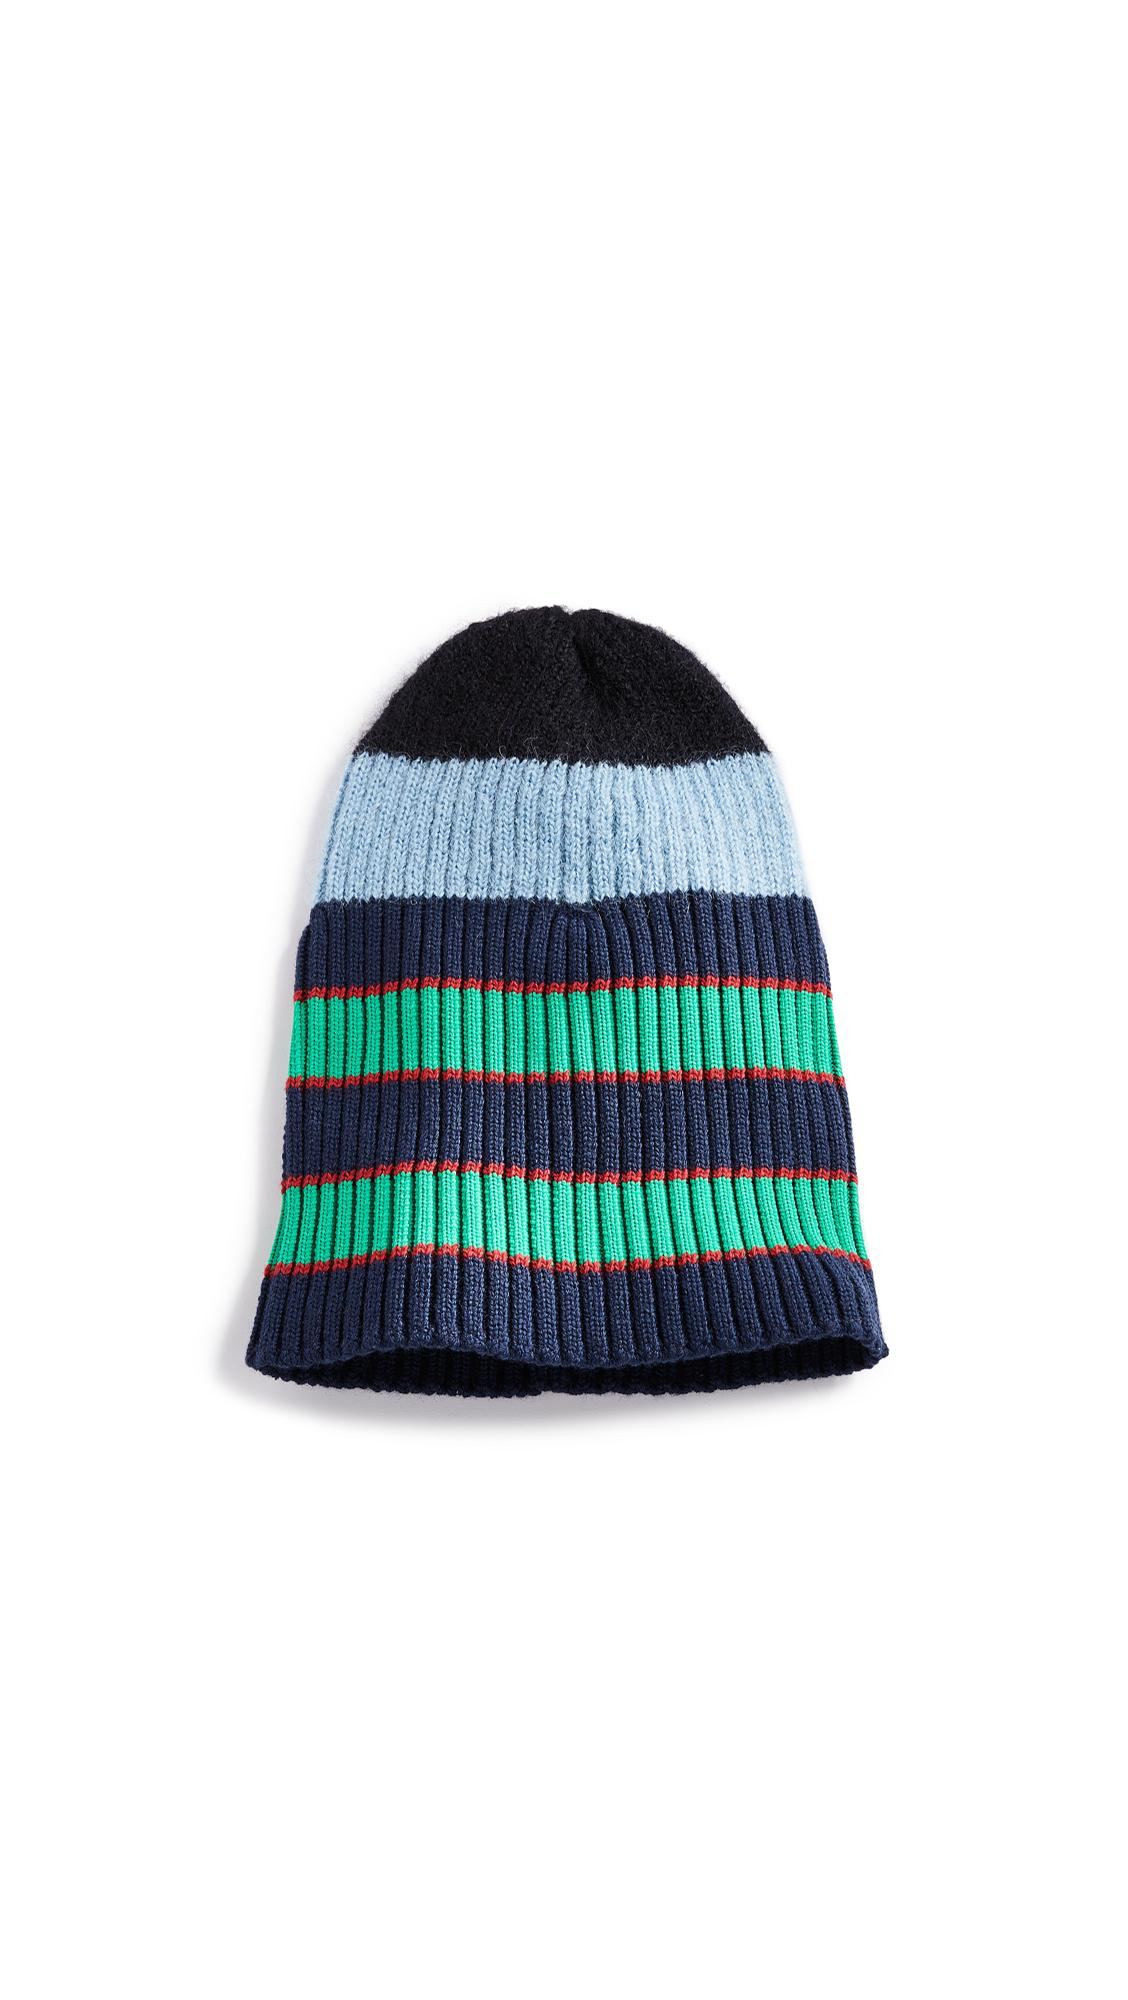 5d2ad889a868f Kenzo Stripy Cable Wool Beanie In Sky Blue